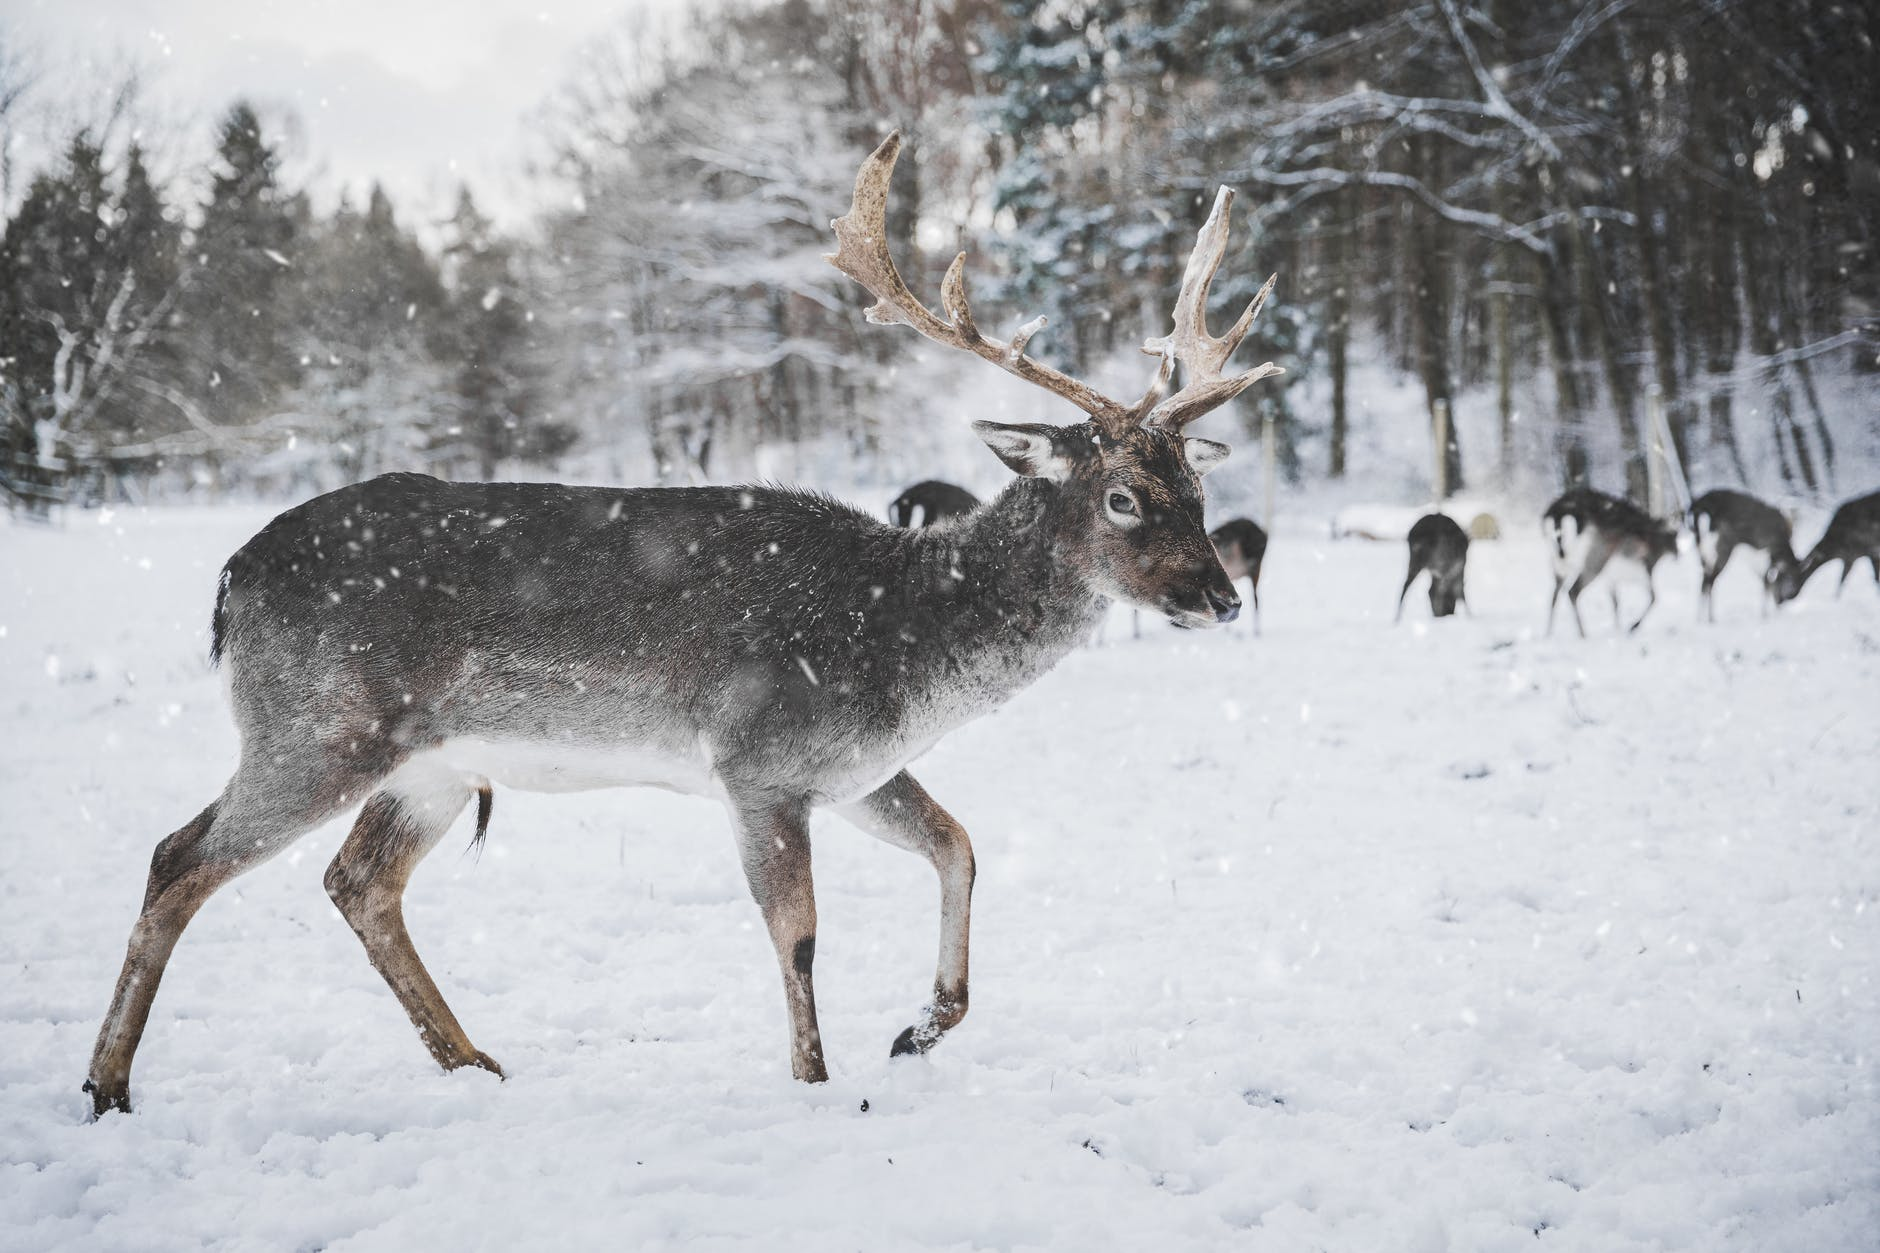 Female reindeer, like the one pictured here, have antlers in December, so Rudolph might actually be a chick.